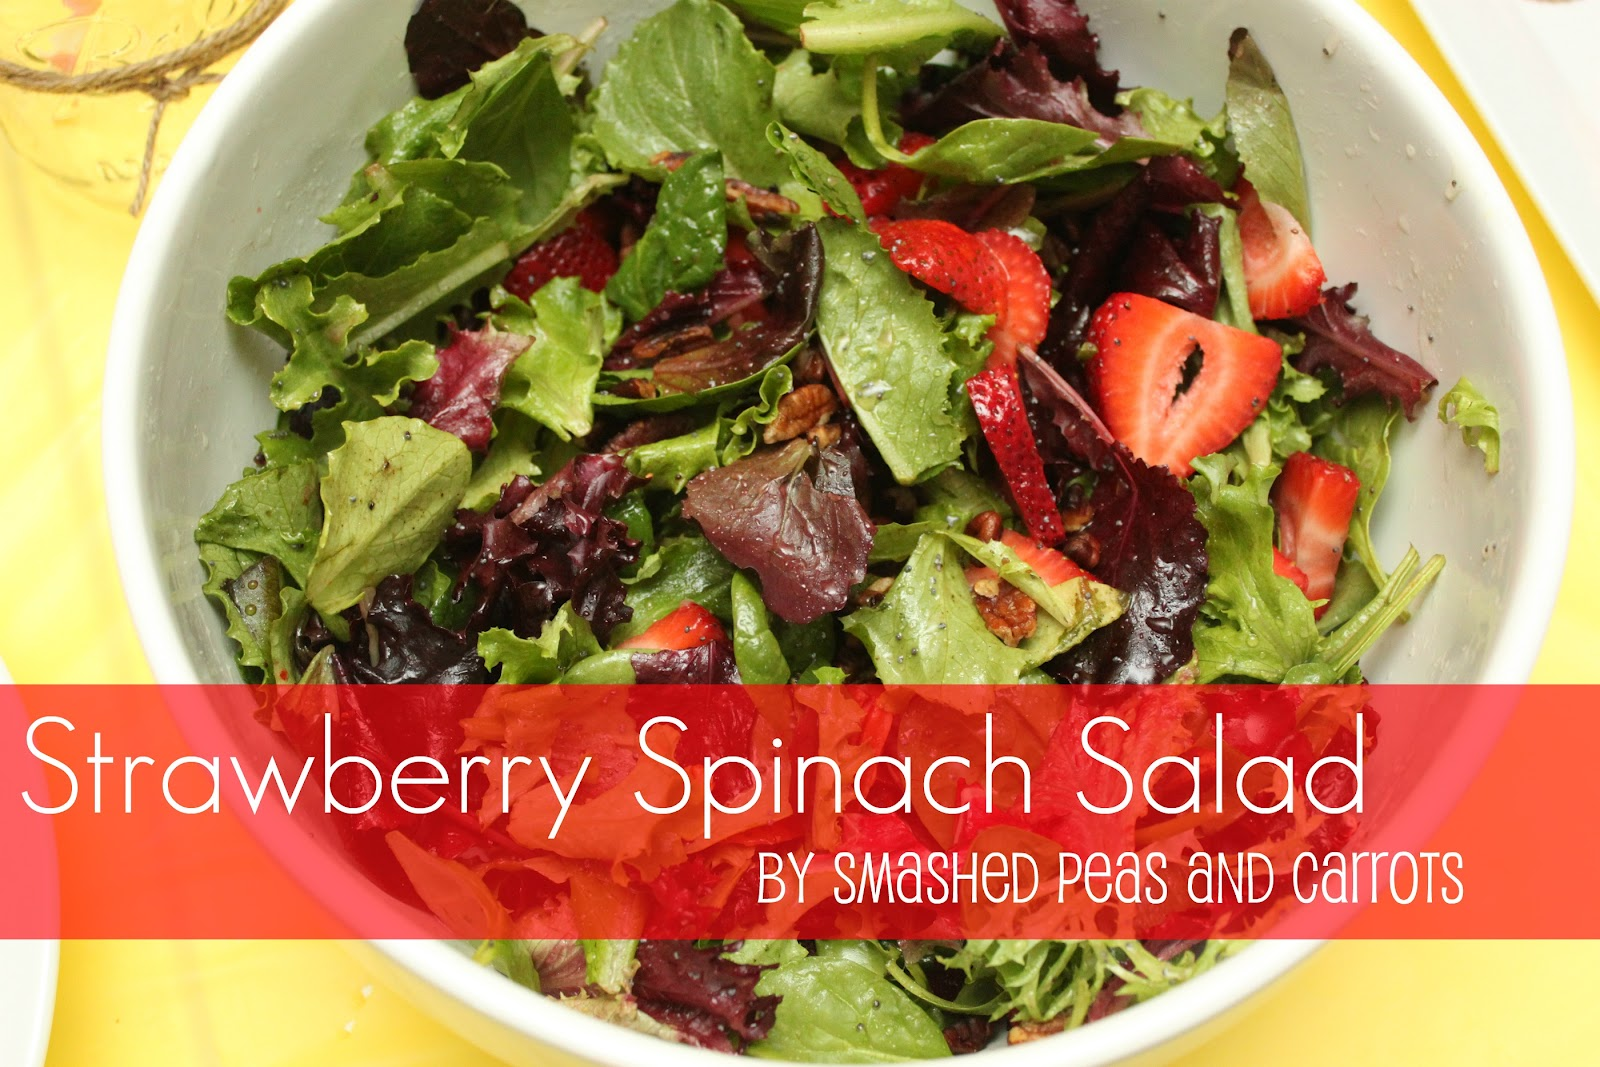 Strawberry Spinach Salad - Smashed Peas & Carrots